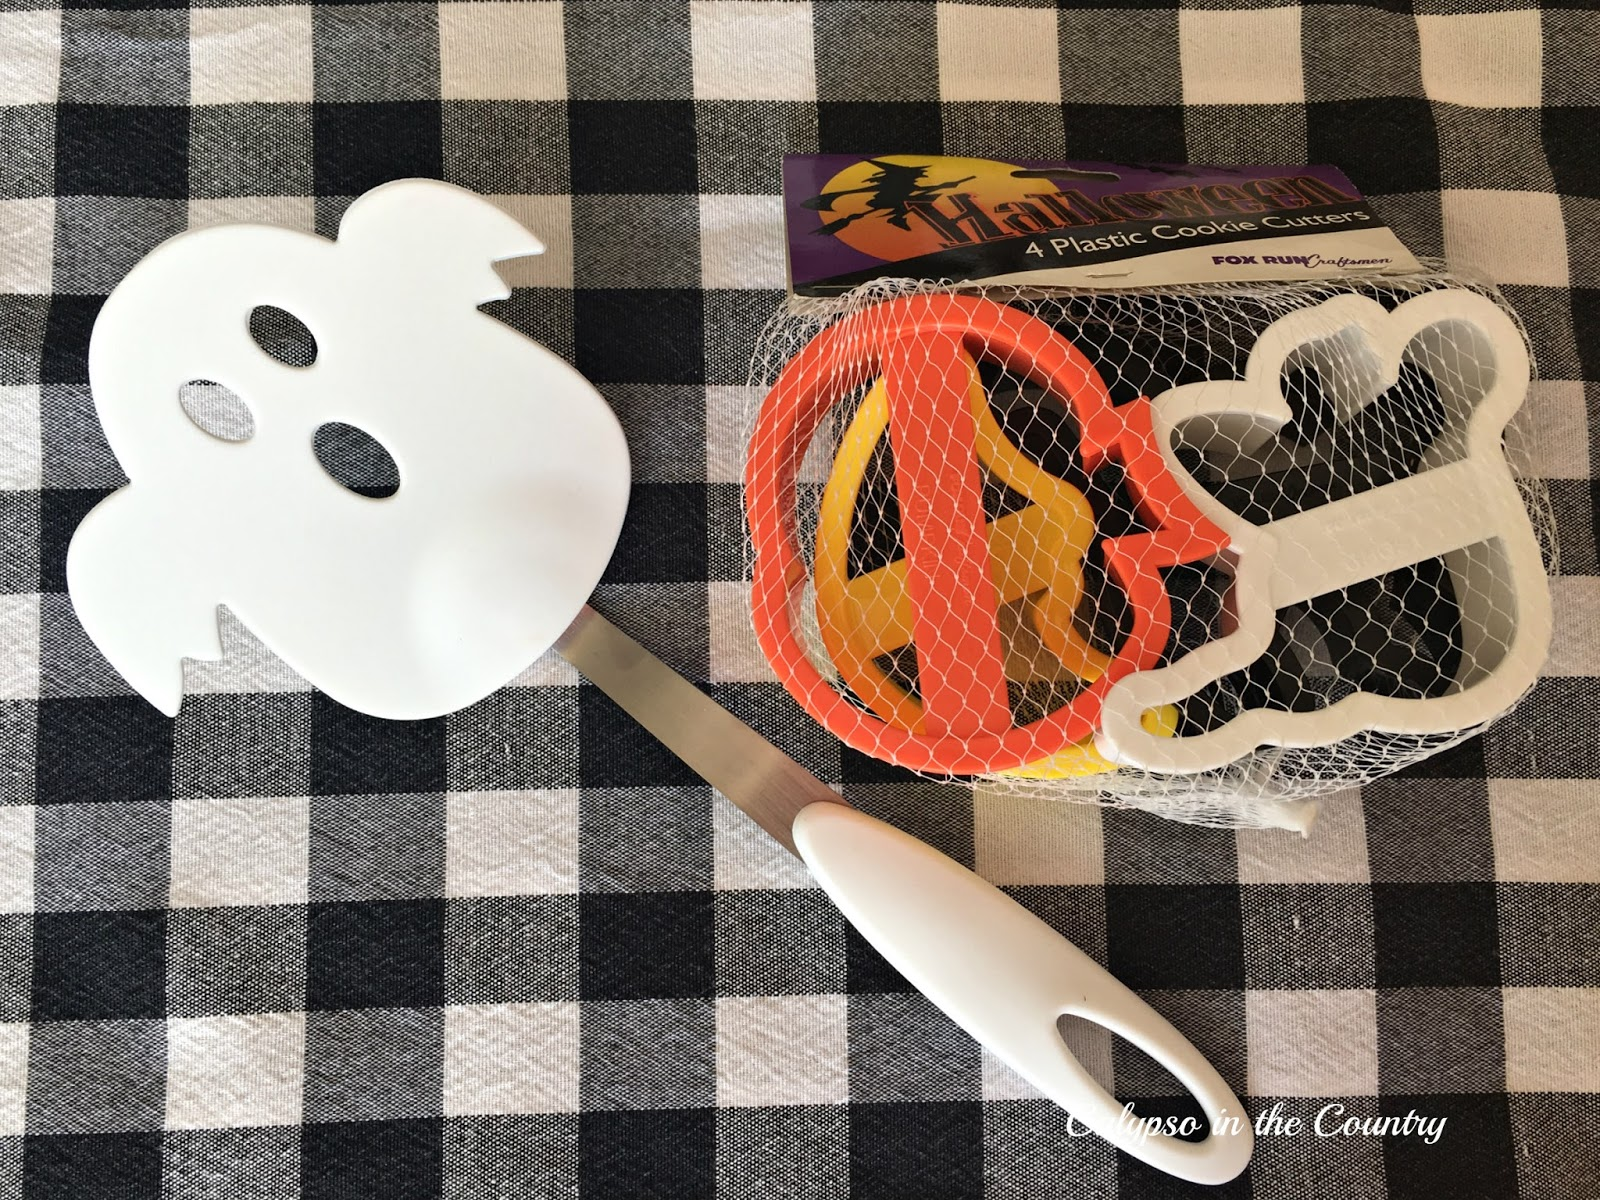 Halloween cooking accessories - ideas to fill goodie bags